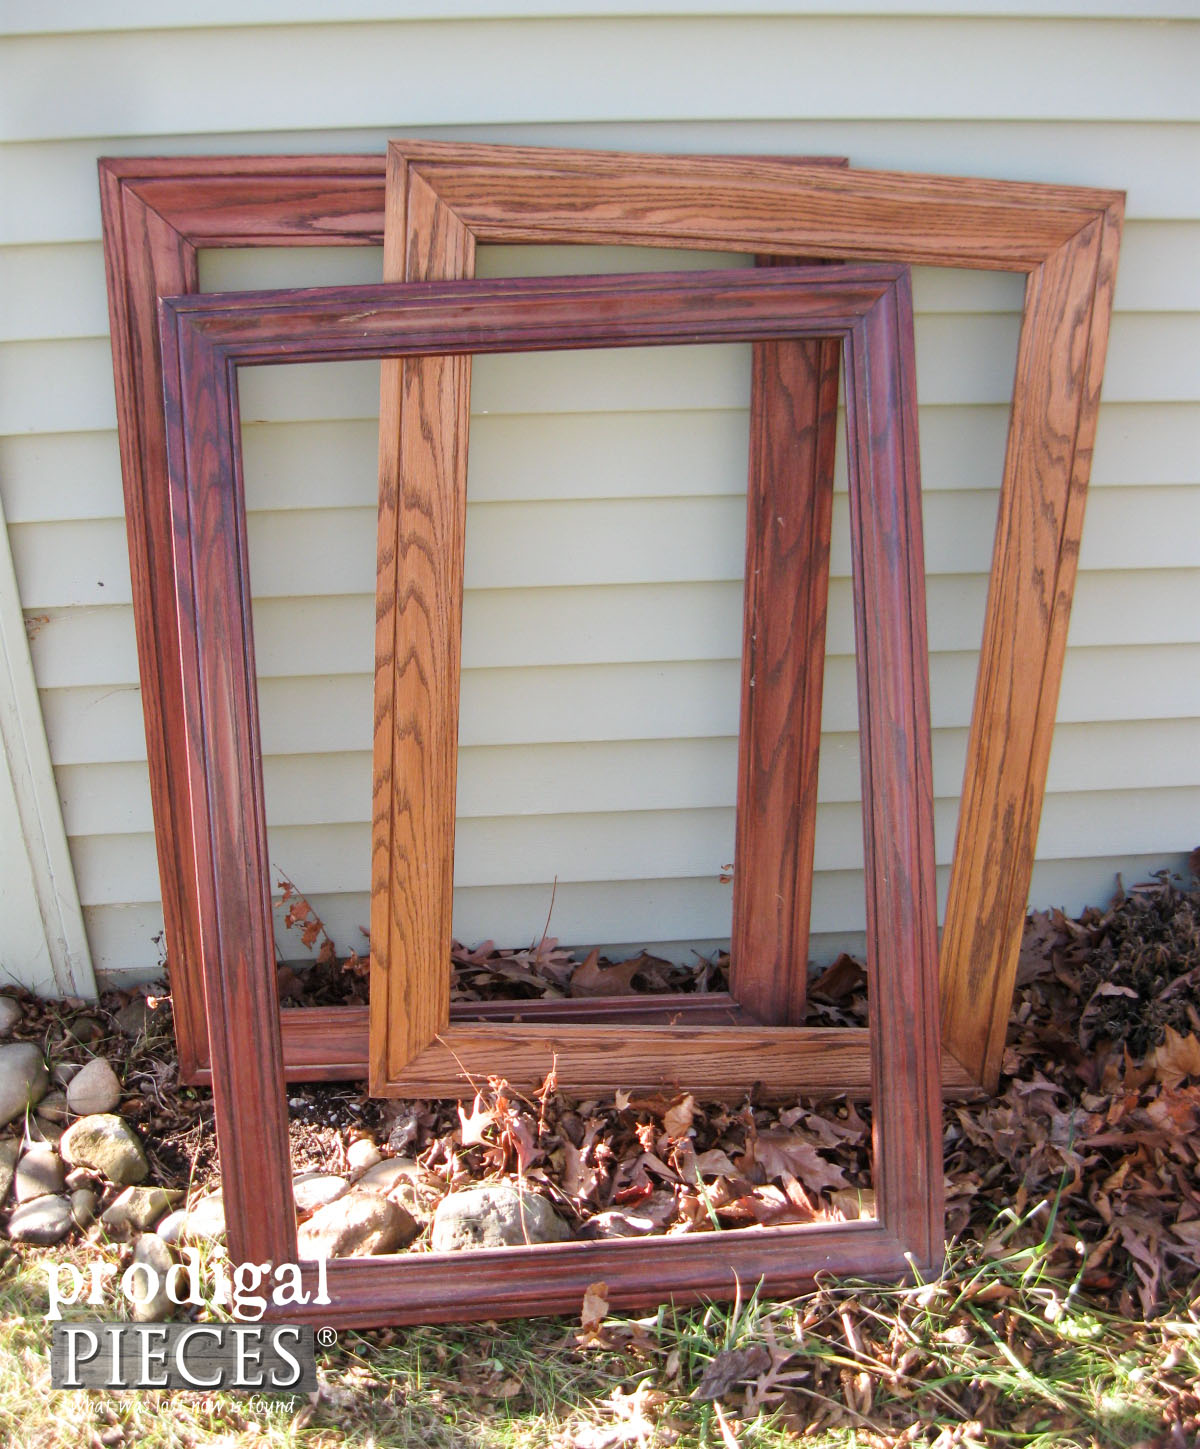 Thrifted Frames Before Makeover | Prodigal Pieces | prodigalpieces.com